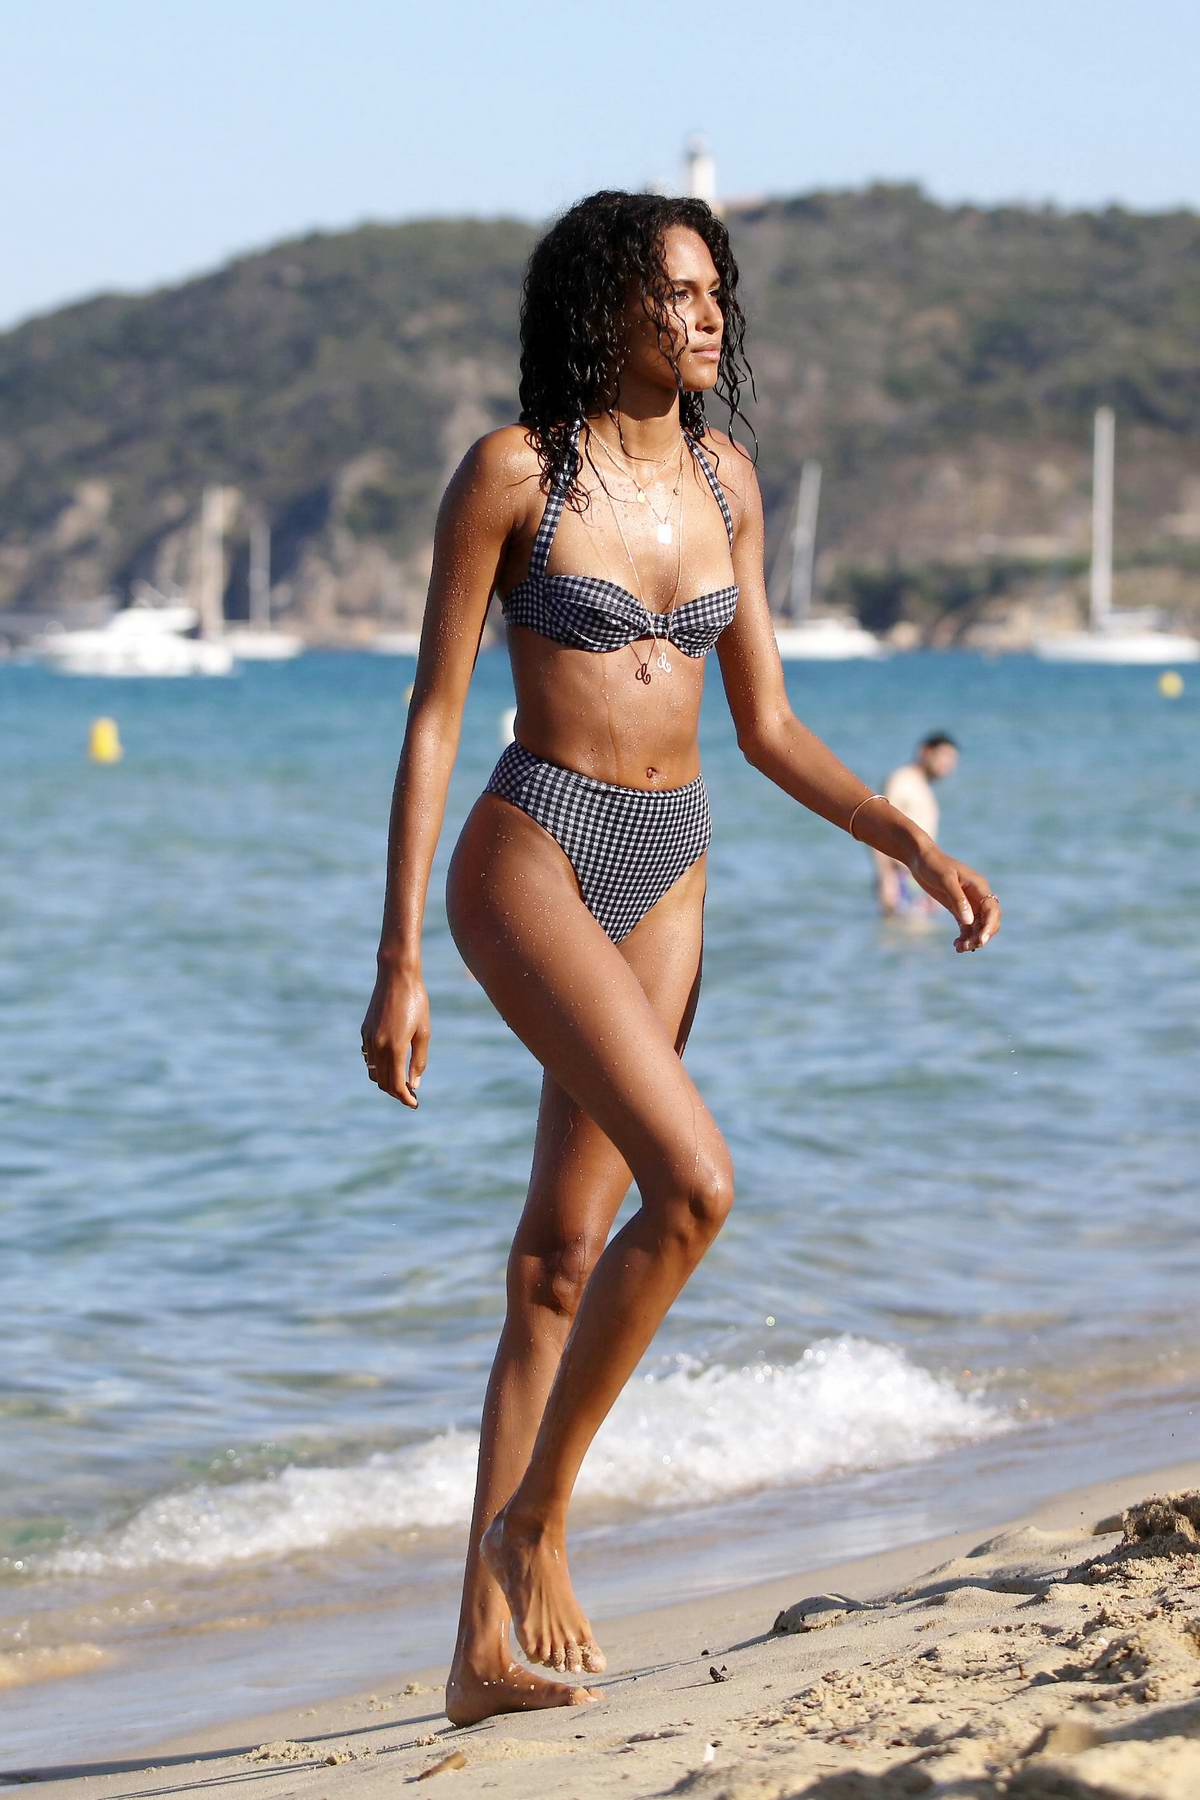 Cindy Bruna wears gingham pattern bikini while enjoying a day with her sister at Verde Beach in Saint-Tropez, France